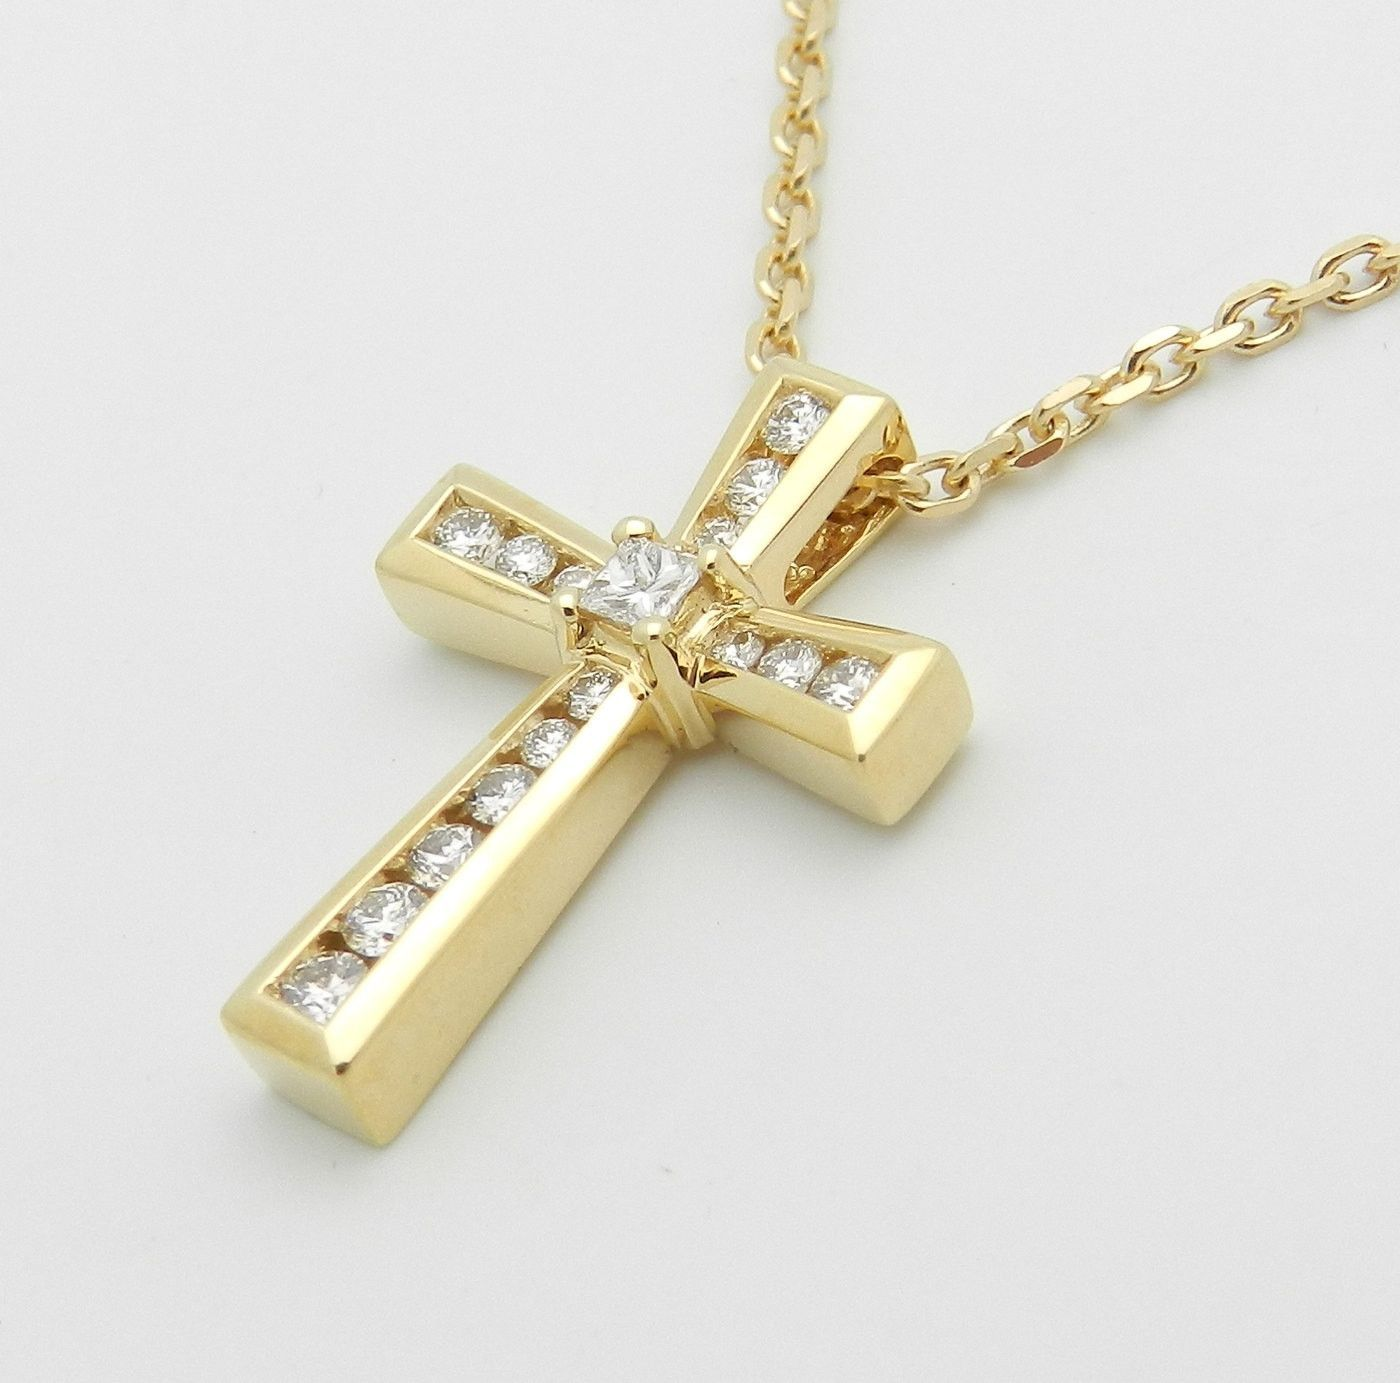 Princess Cut Diamond CROSS Pendant Necklace Religious Charm 14K